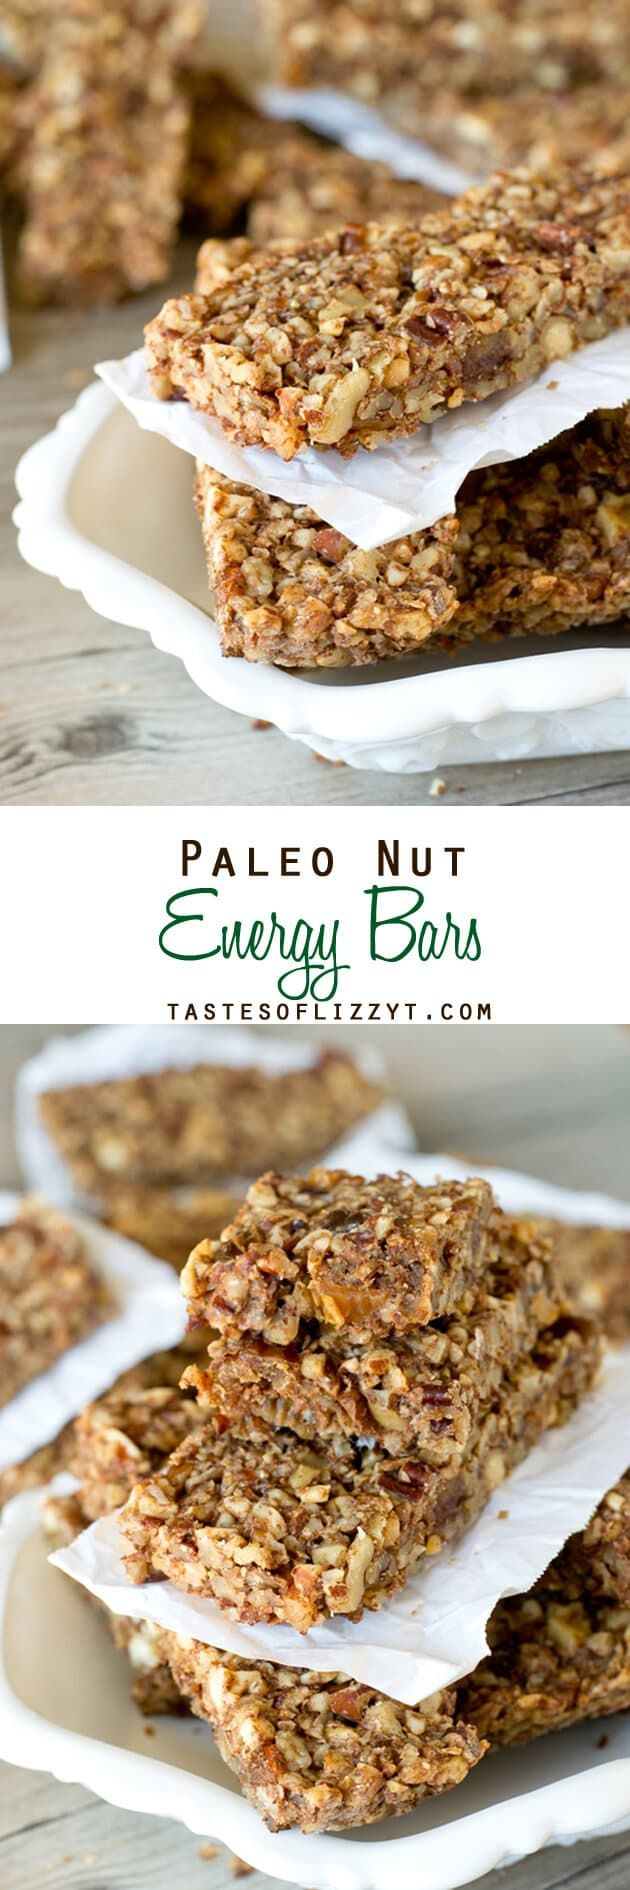 Packed with nuts, dates and a hint of cinnamon, these Paleo Nut Energy Bars are great for an afternoon snack. Great for taking healthy snacks on the go. Paleo Nut Energy Bars {Healthy Snack Bar Recipe with Dates}